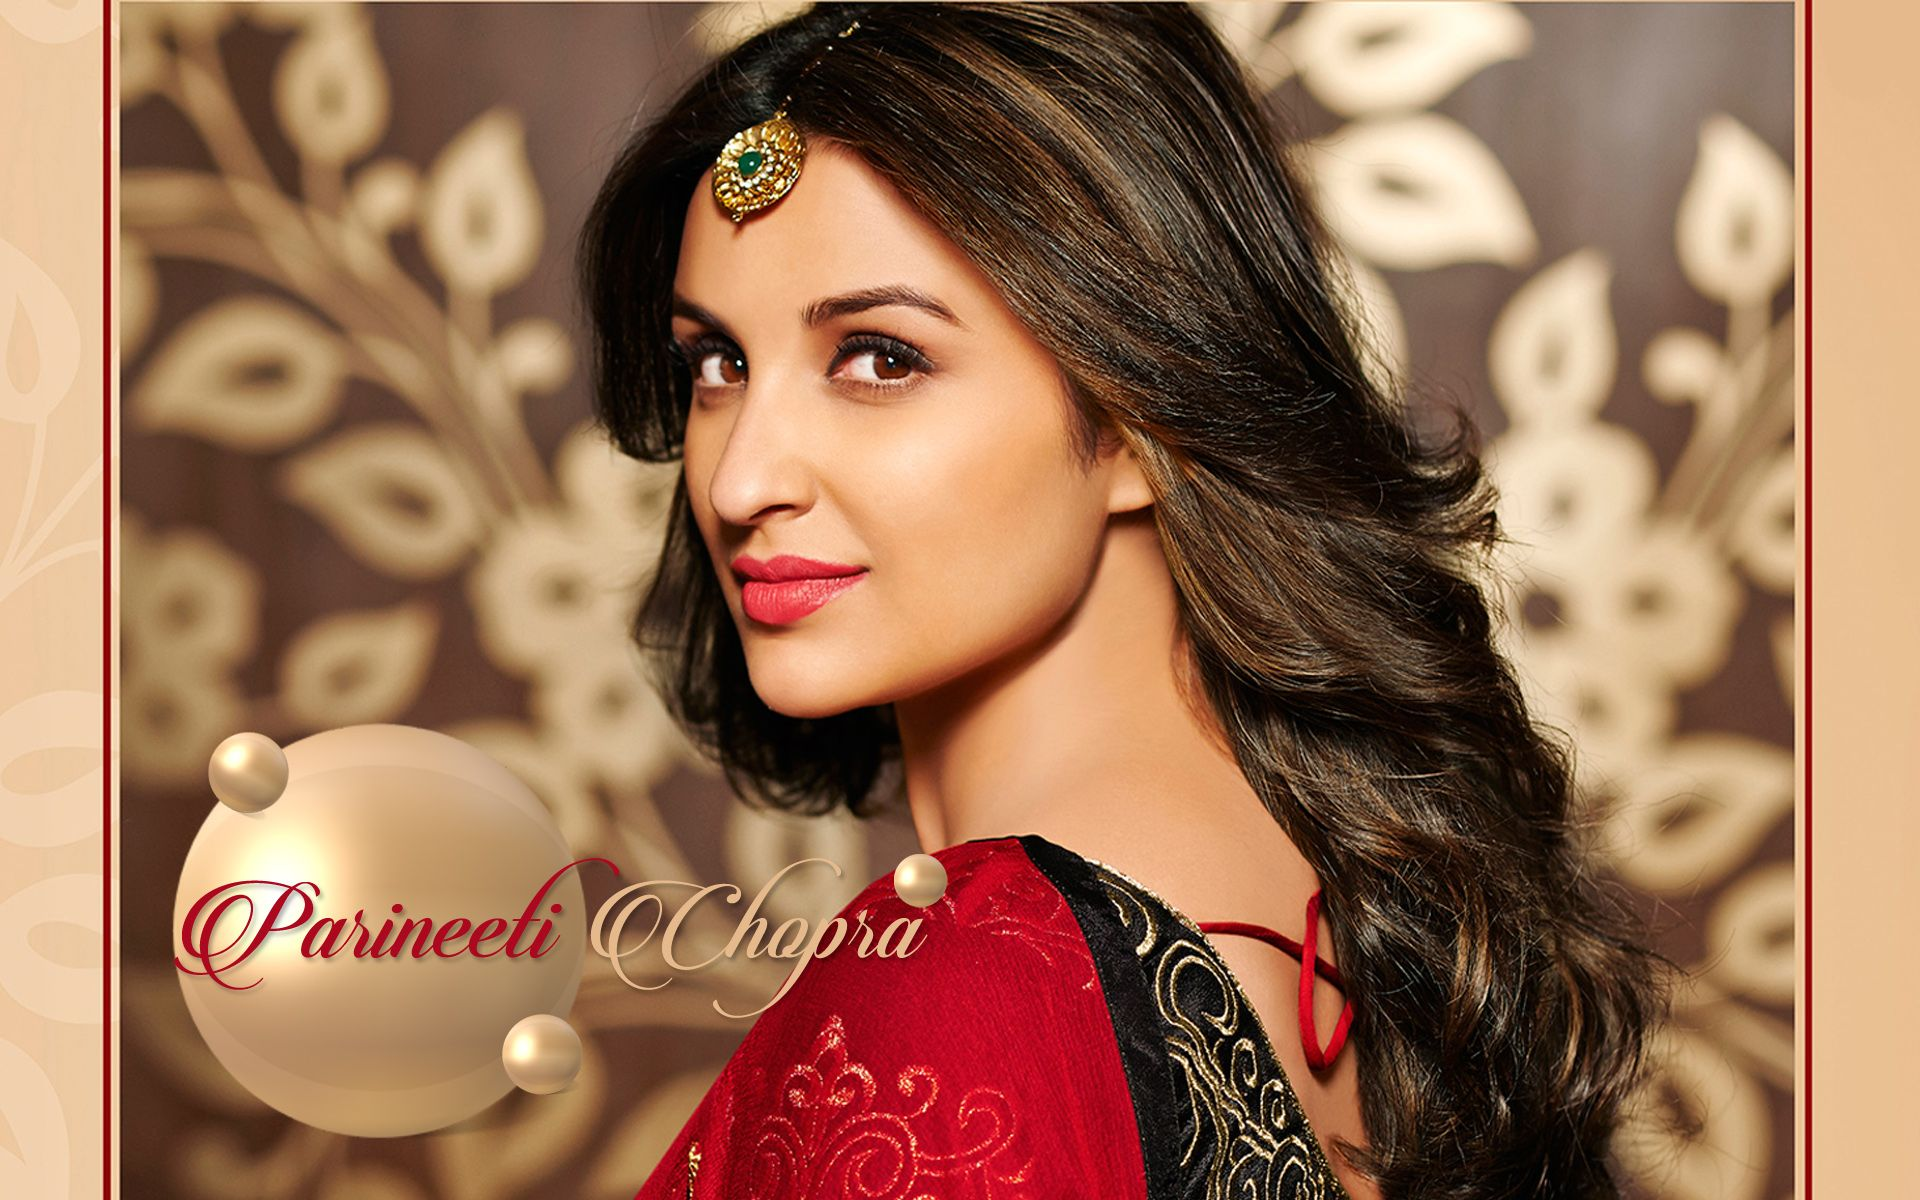 Image result for parineeti chopra traditional images